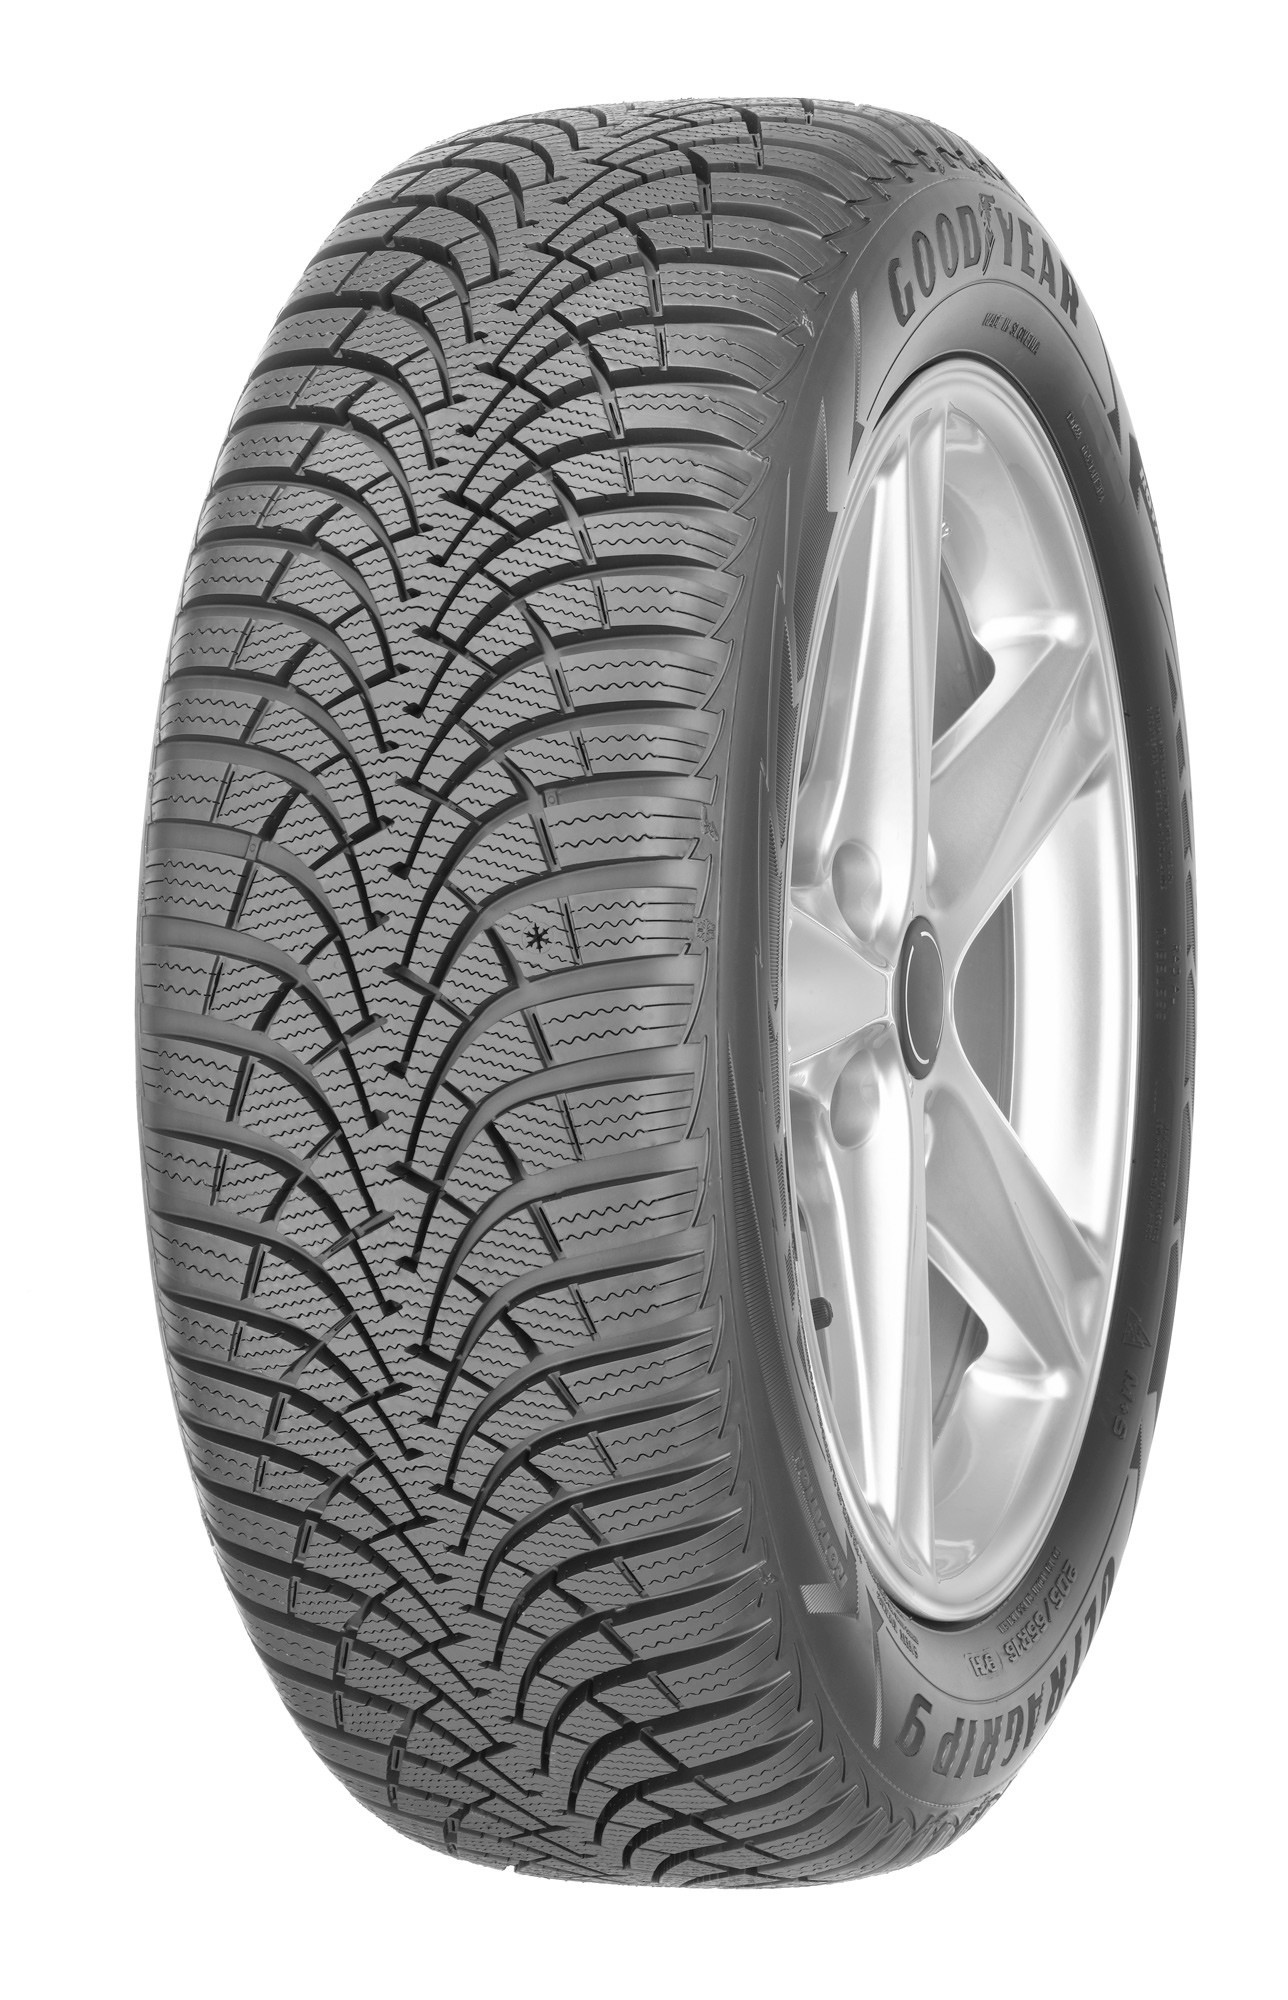 Anvelopa Iarna 195/60R15 88T Goodyear Ultra Grip 9 Ms